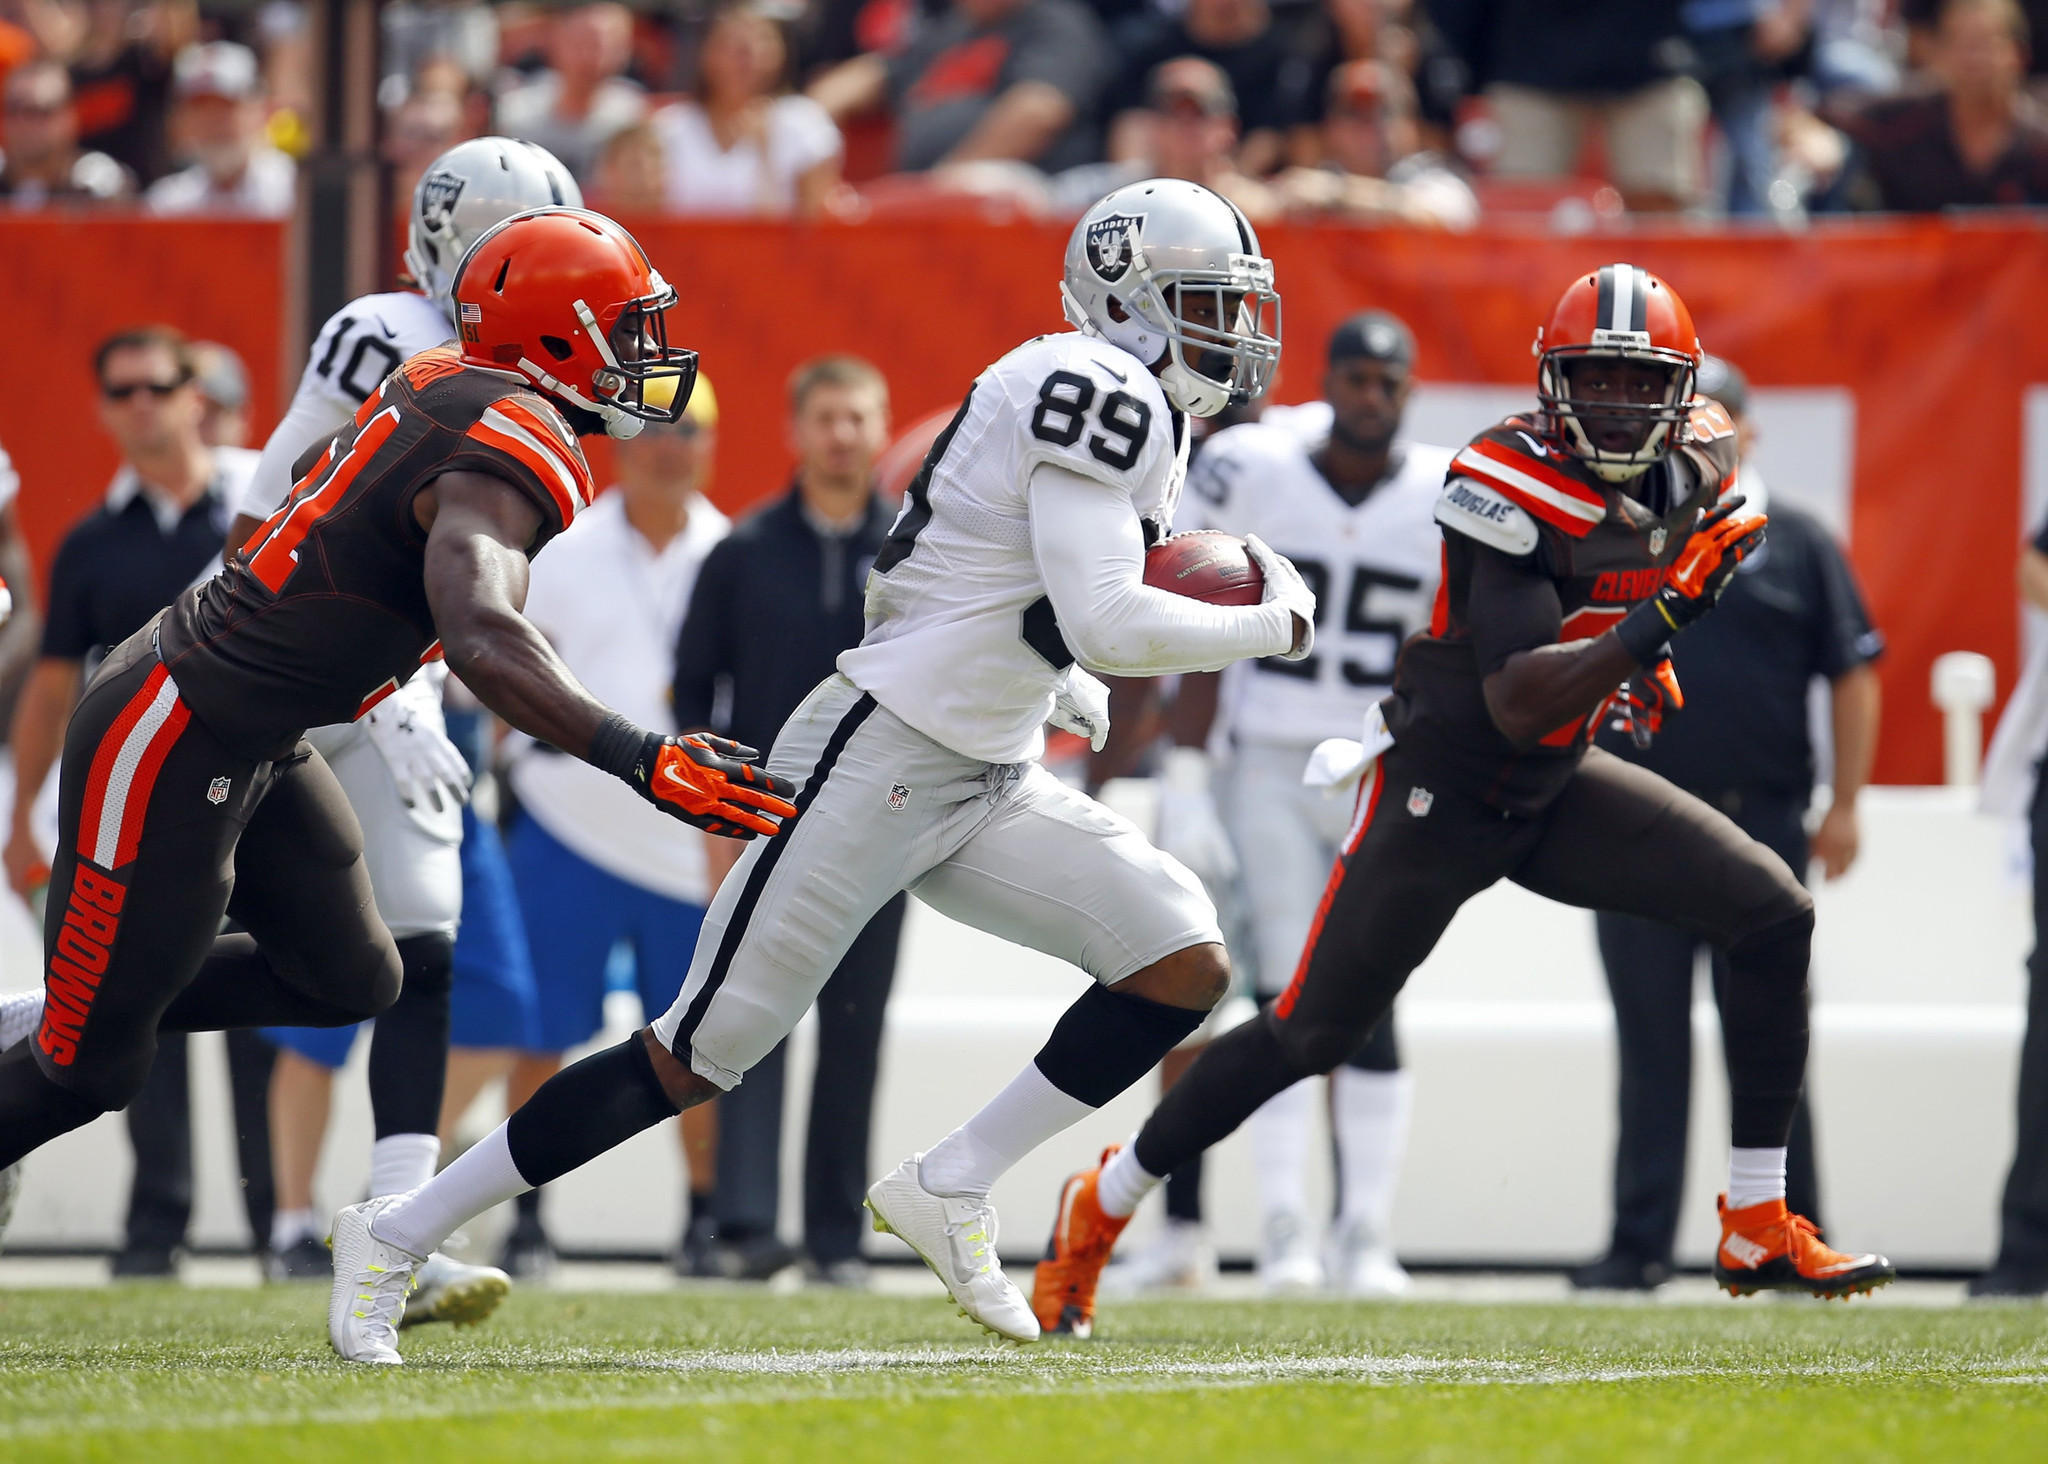 Bears see in Raiders rookie Amari Cooper what Kevin White can be